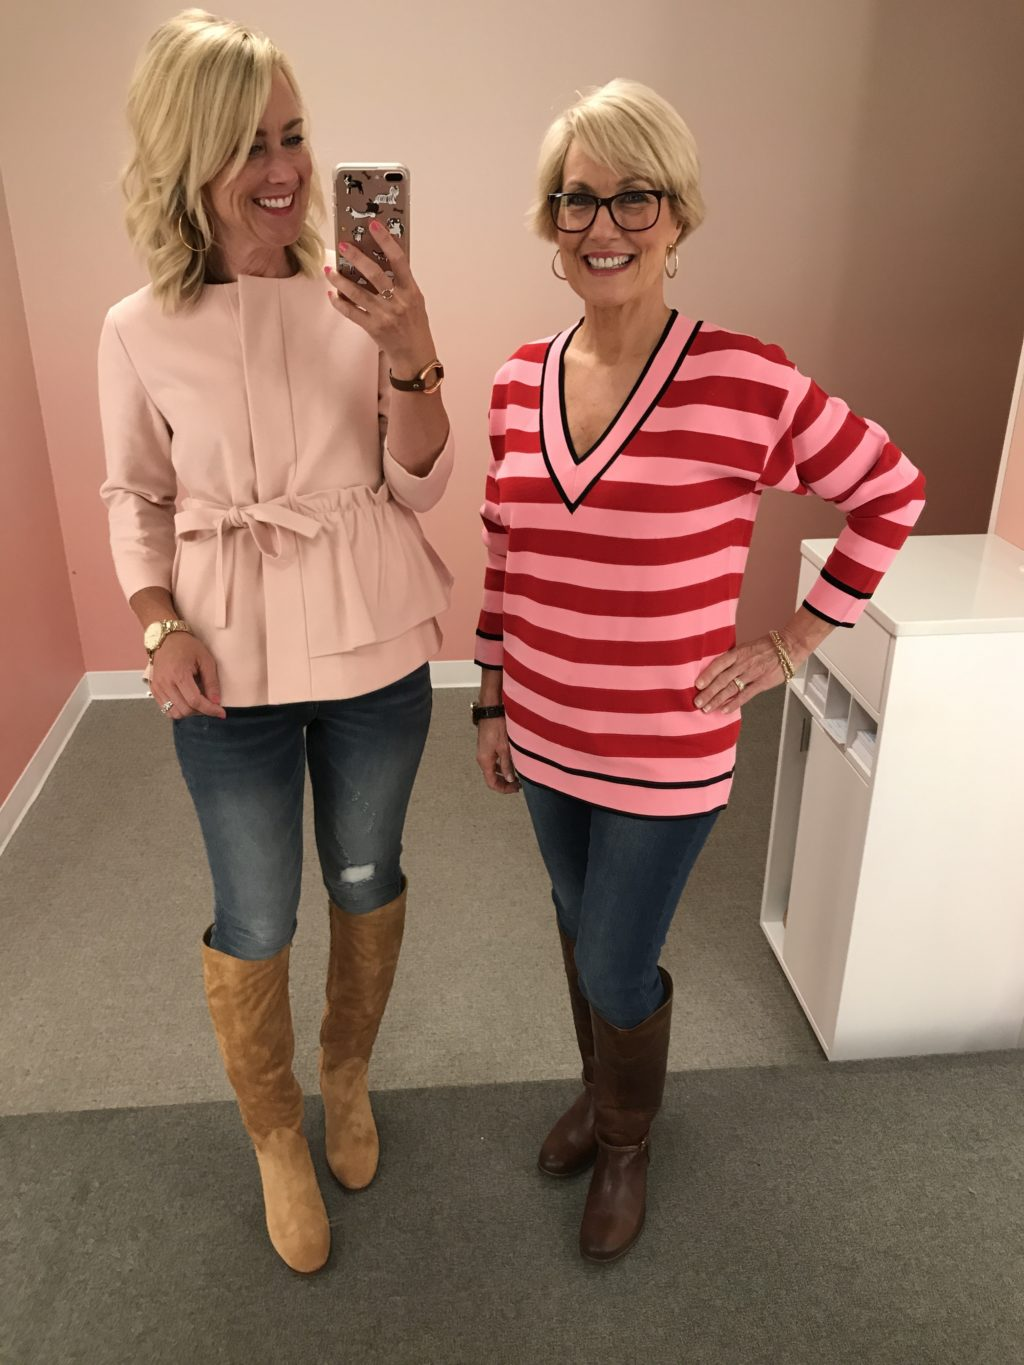 nordstrom anniversary sale pink sweaters 2